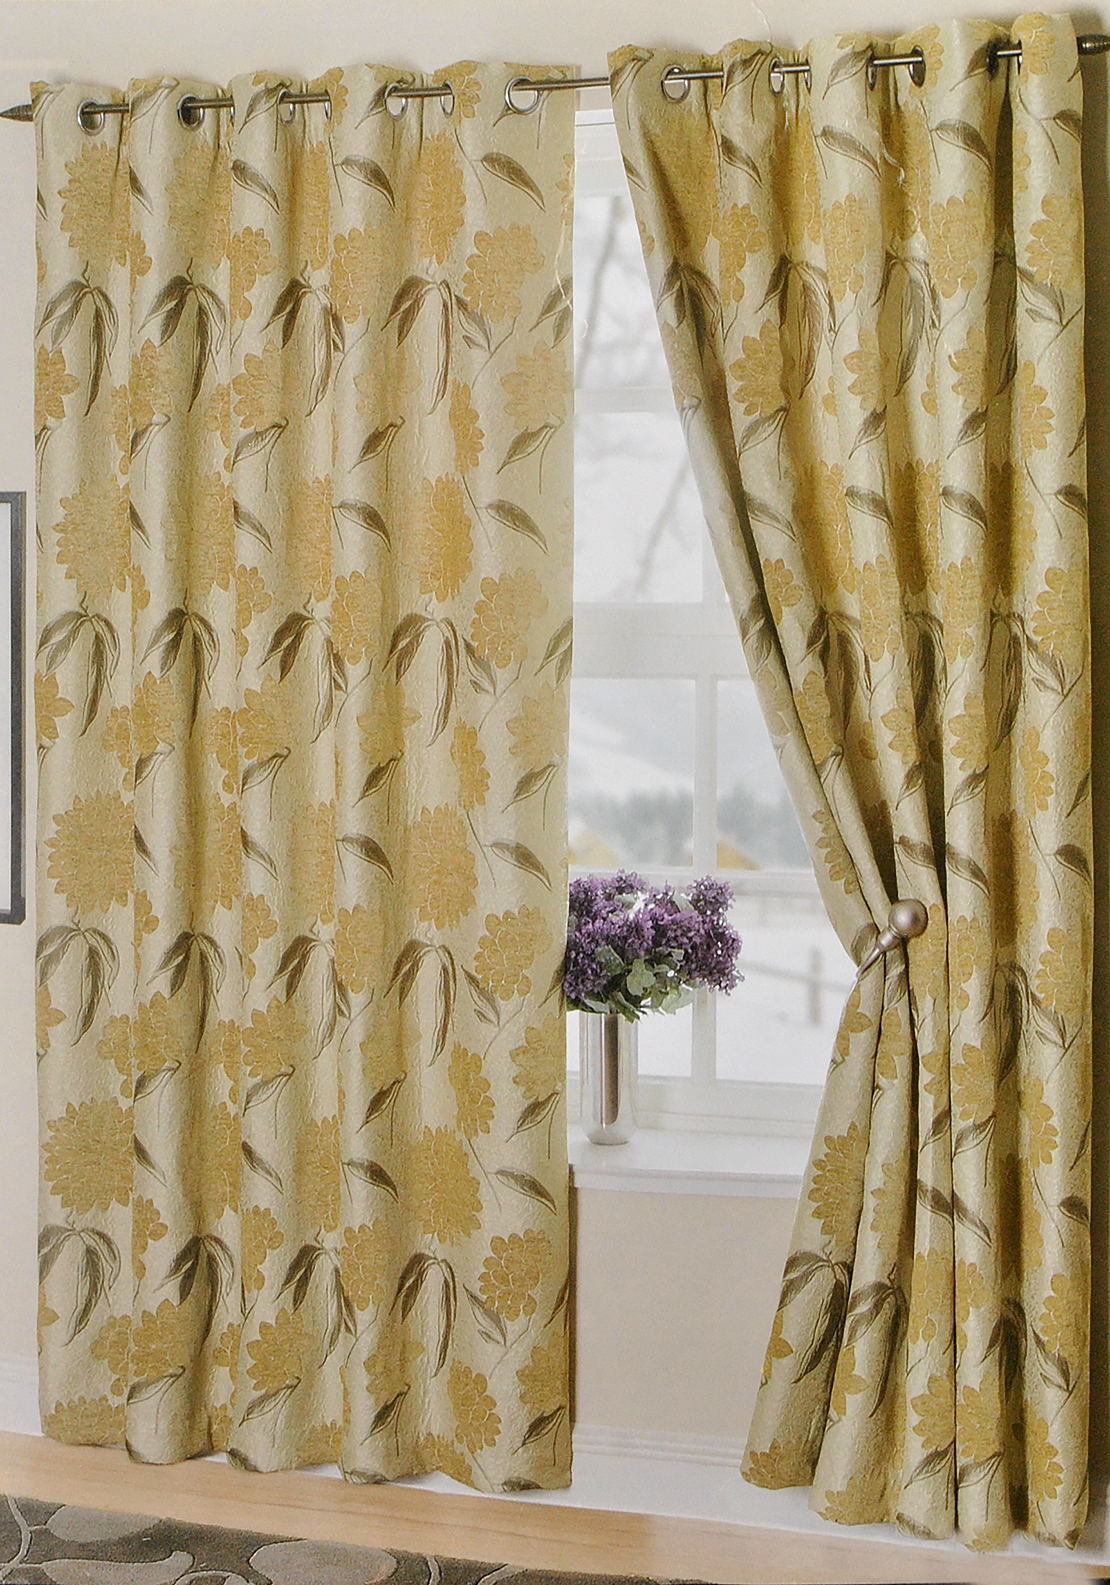 "Ea Design Napoli Floral Print Fully Lined Eyelet Curtains 90 x 90"", Gold"